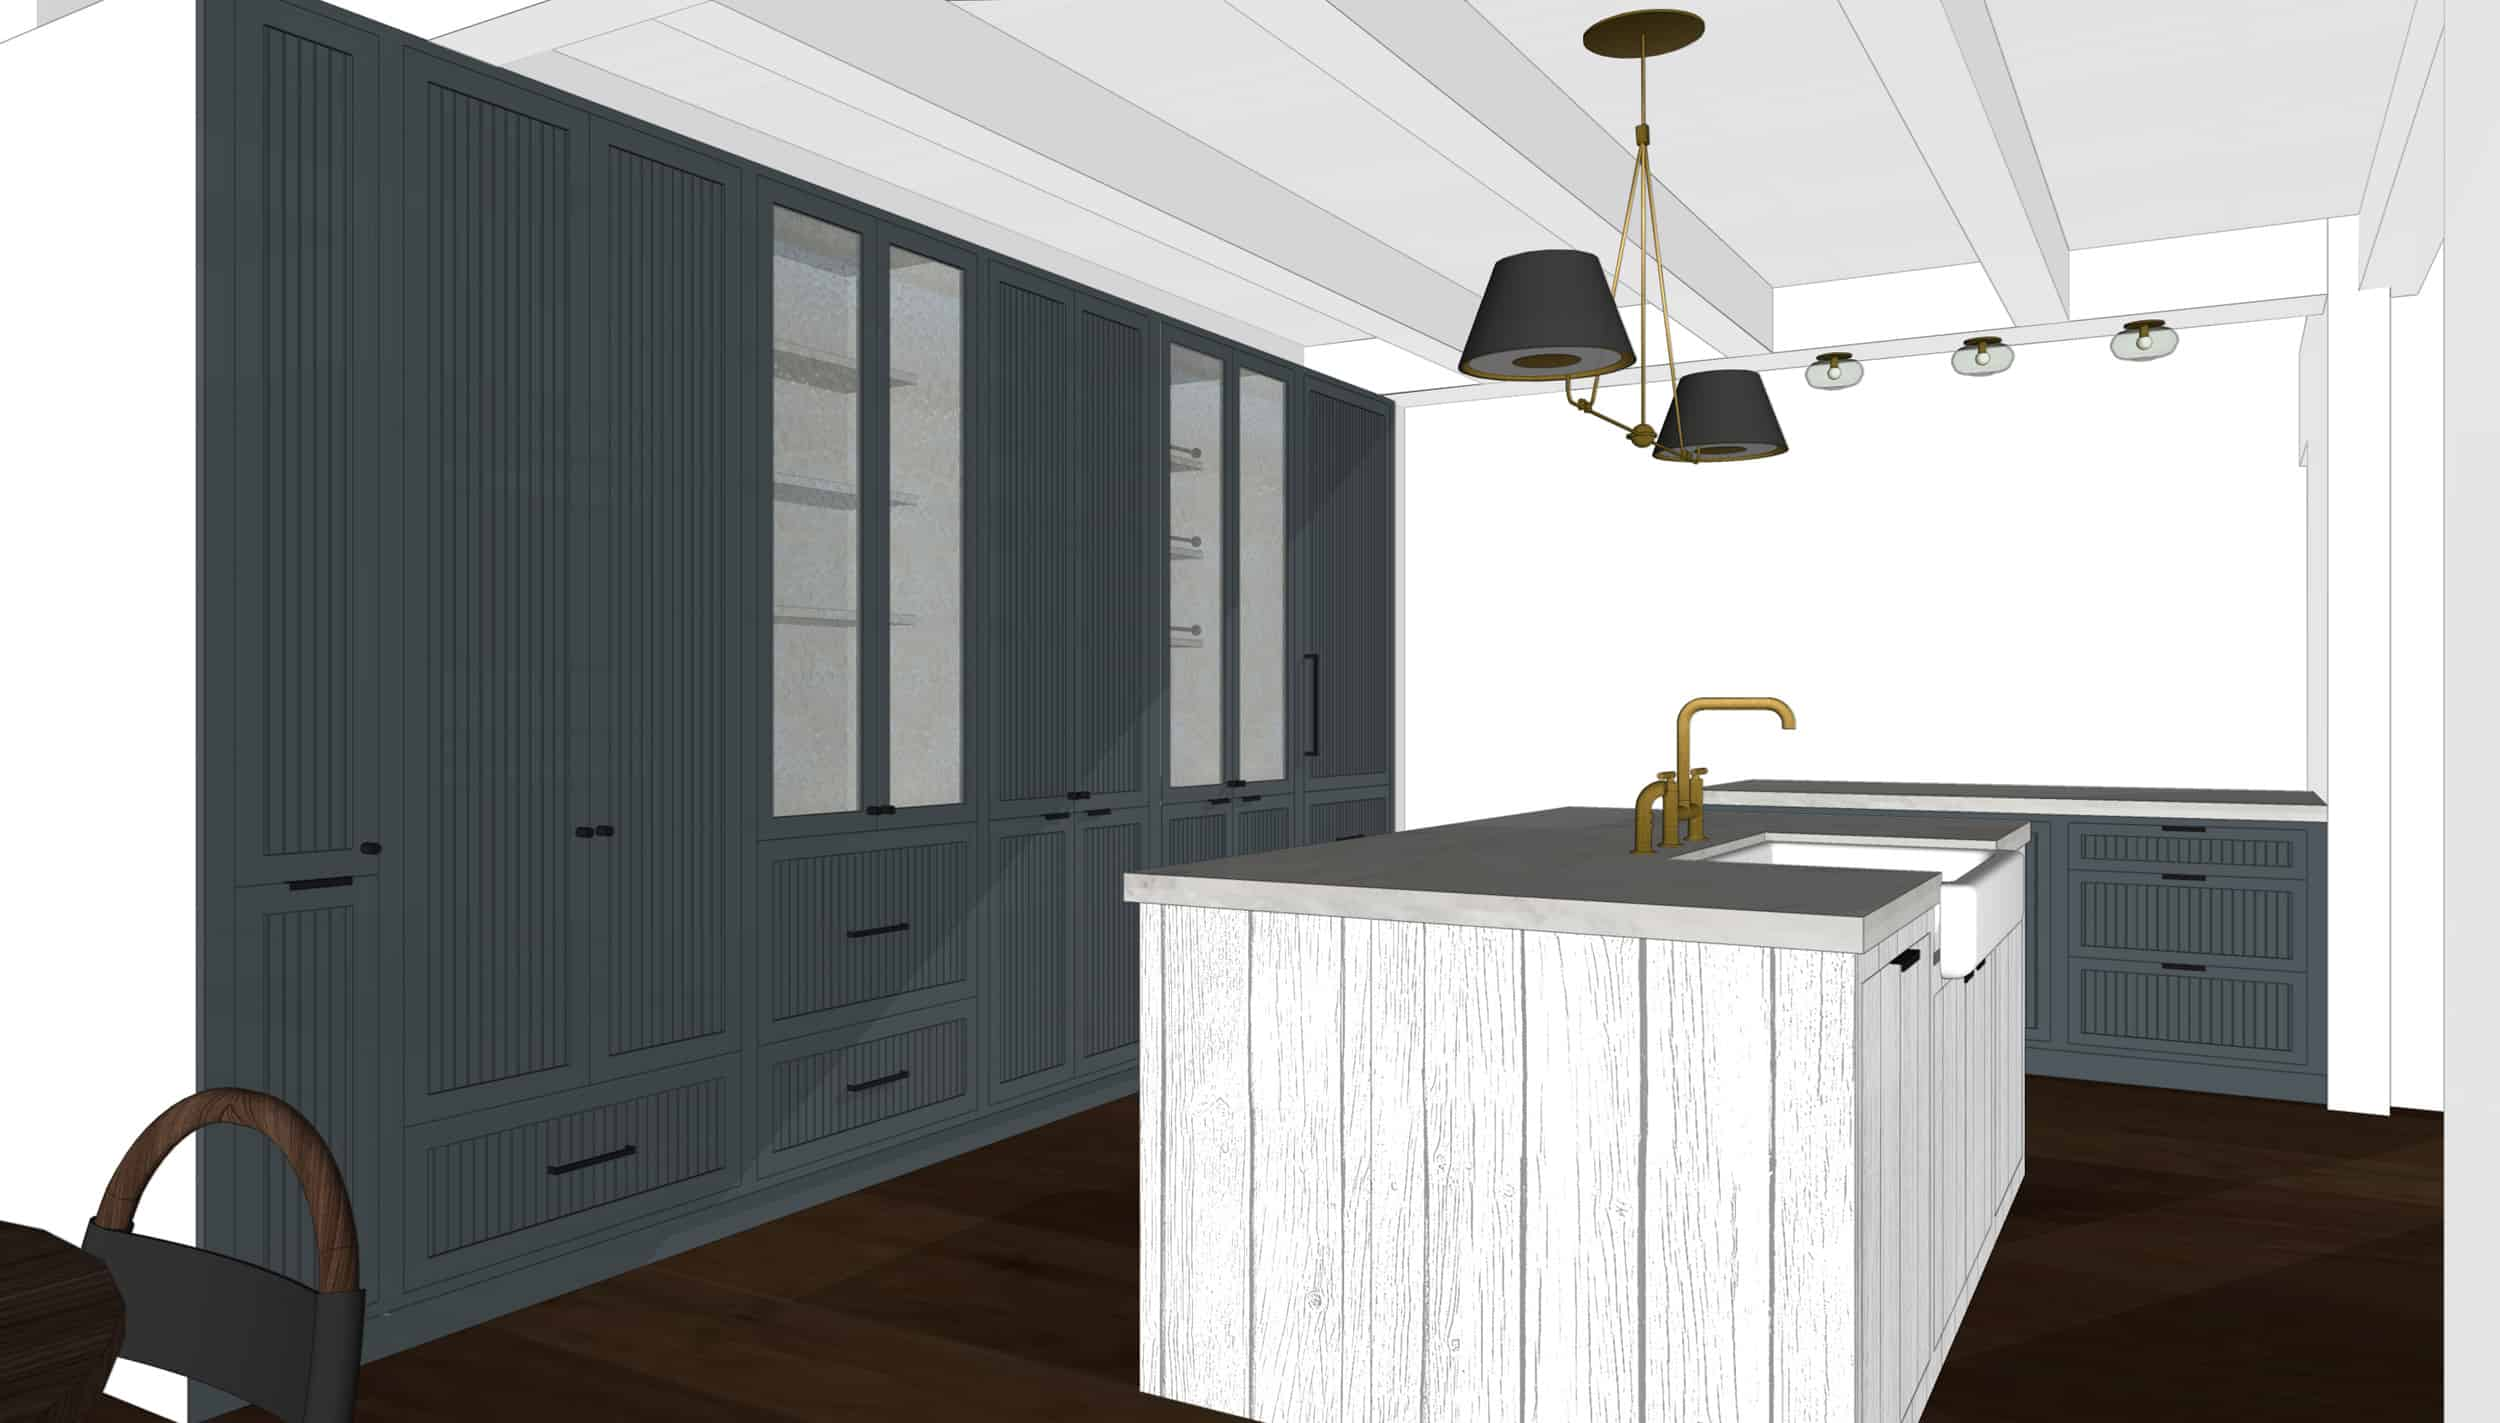 Emily Henderson Mountain Fixer Upper I Design You Decide Kitchen Render 05 6.20.18